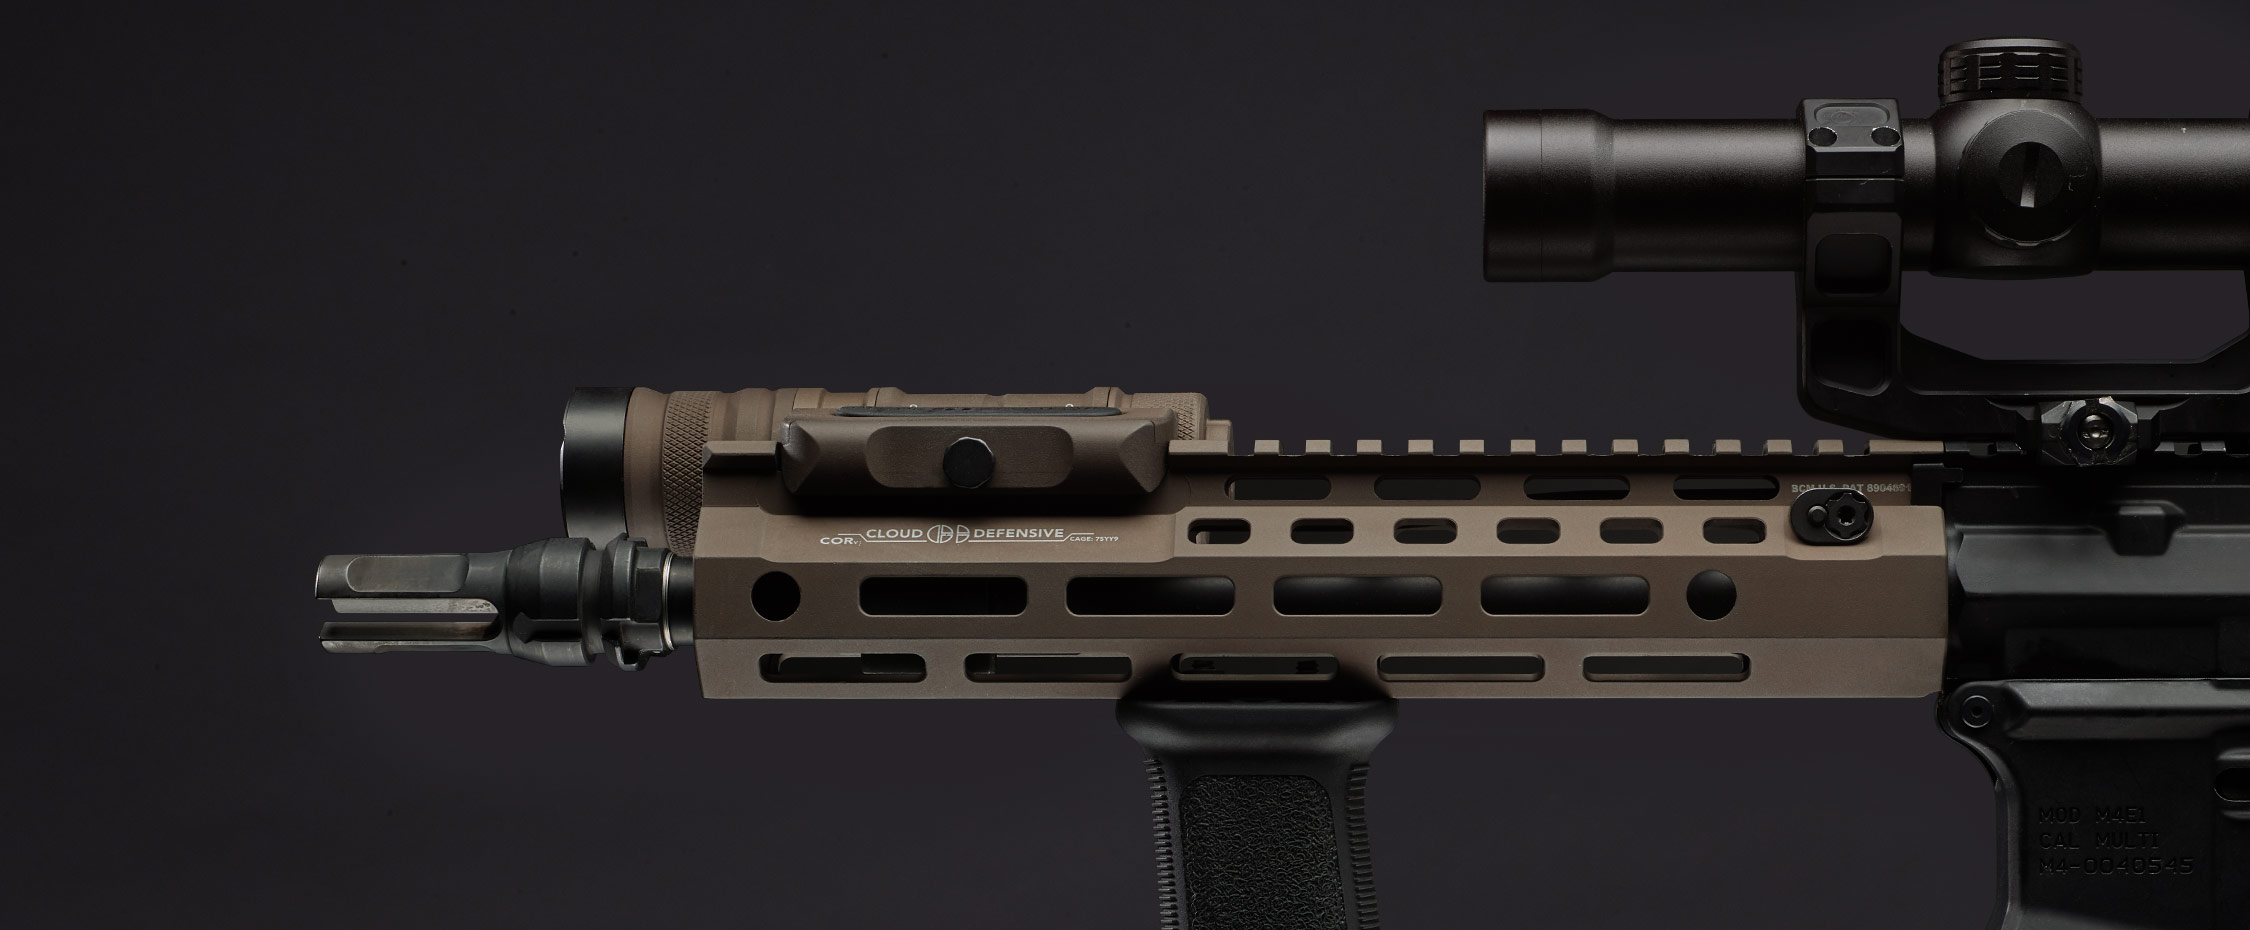 COR v1 profile with OWL FDE